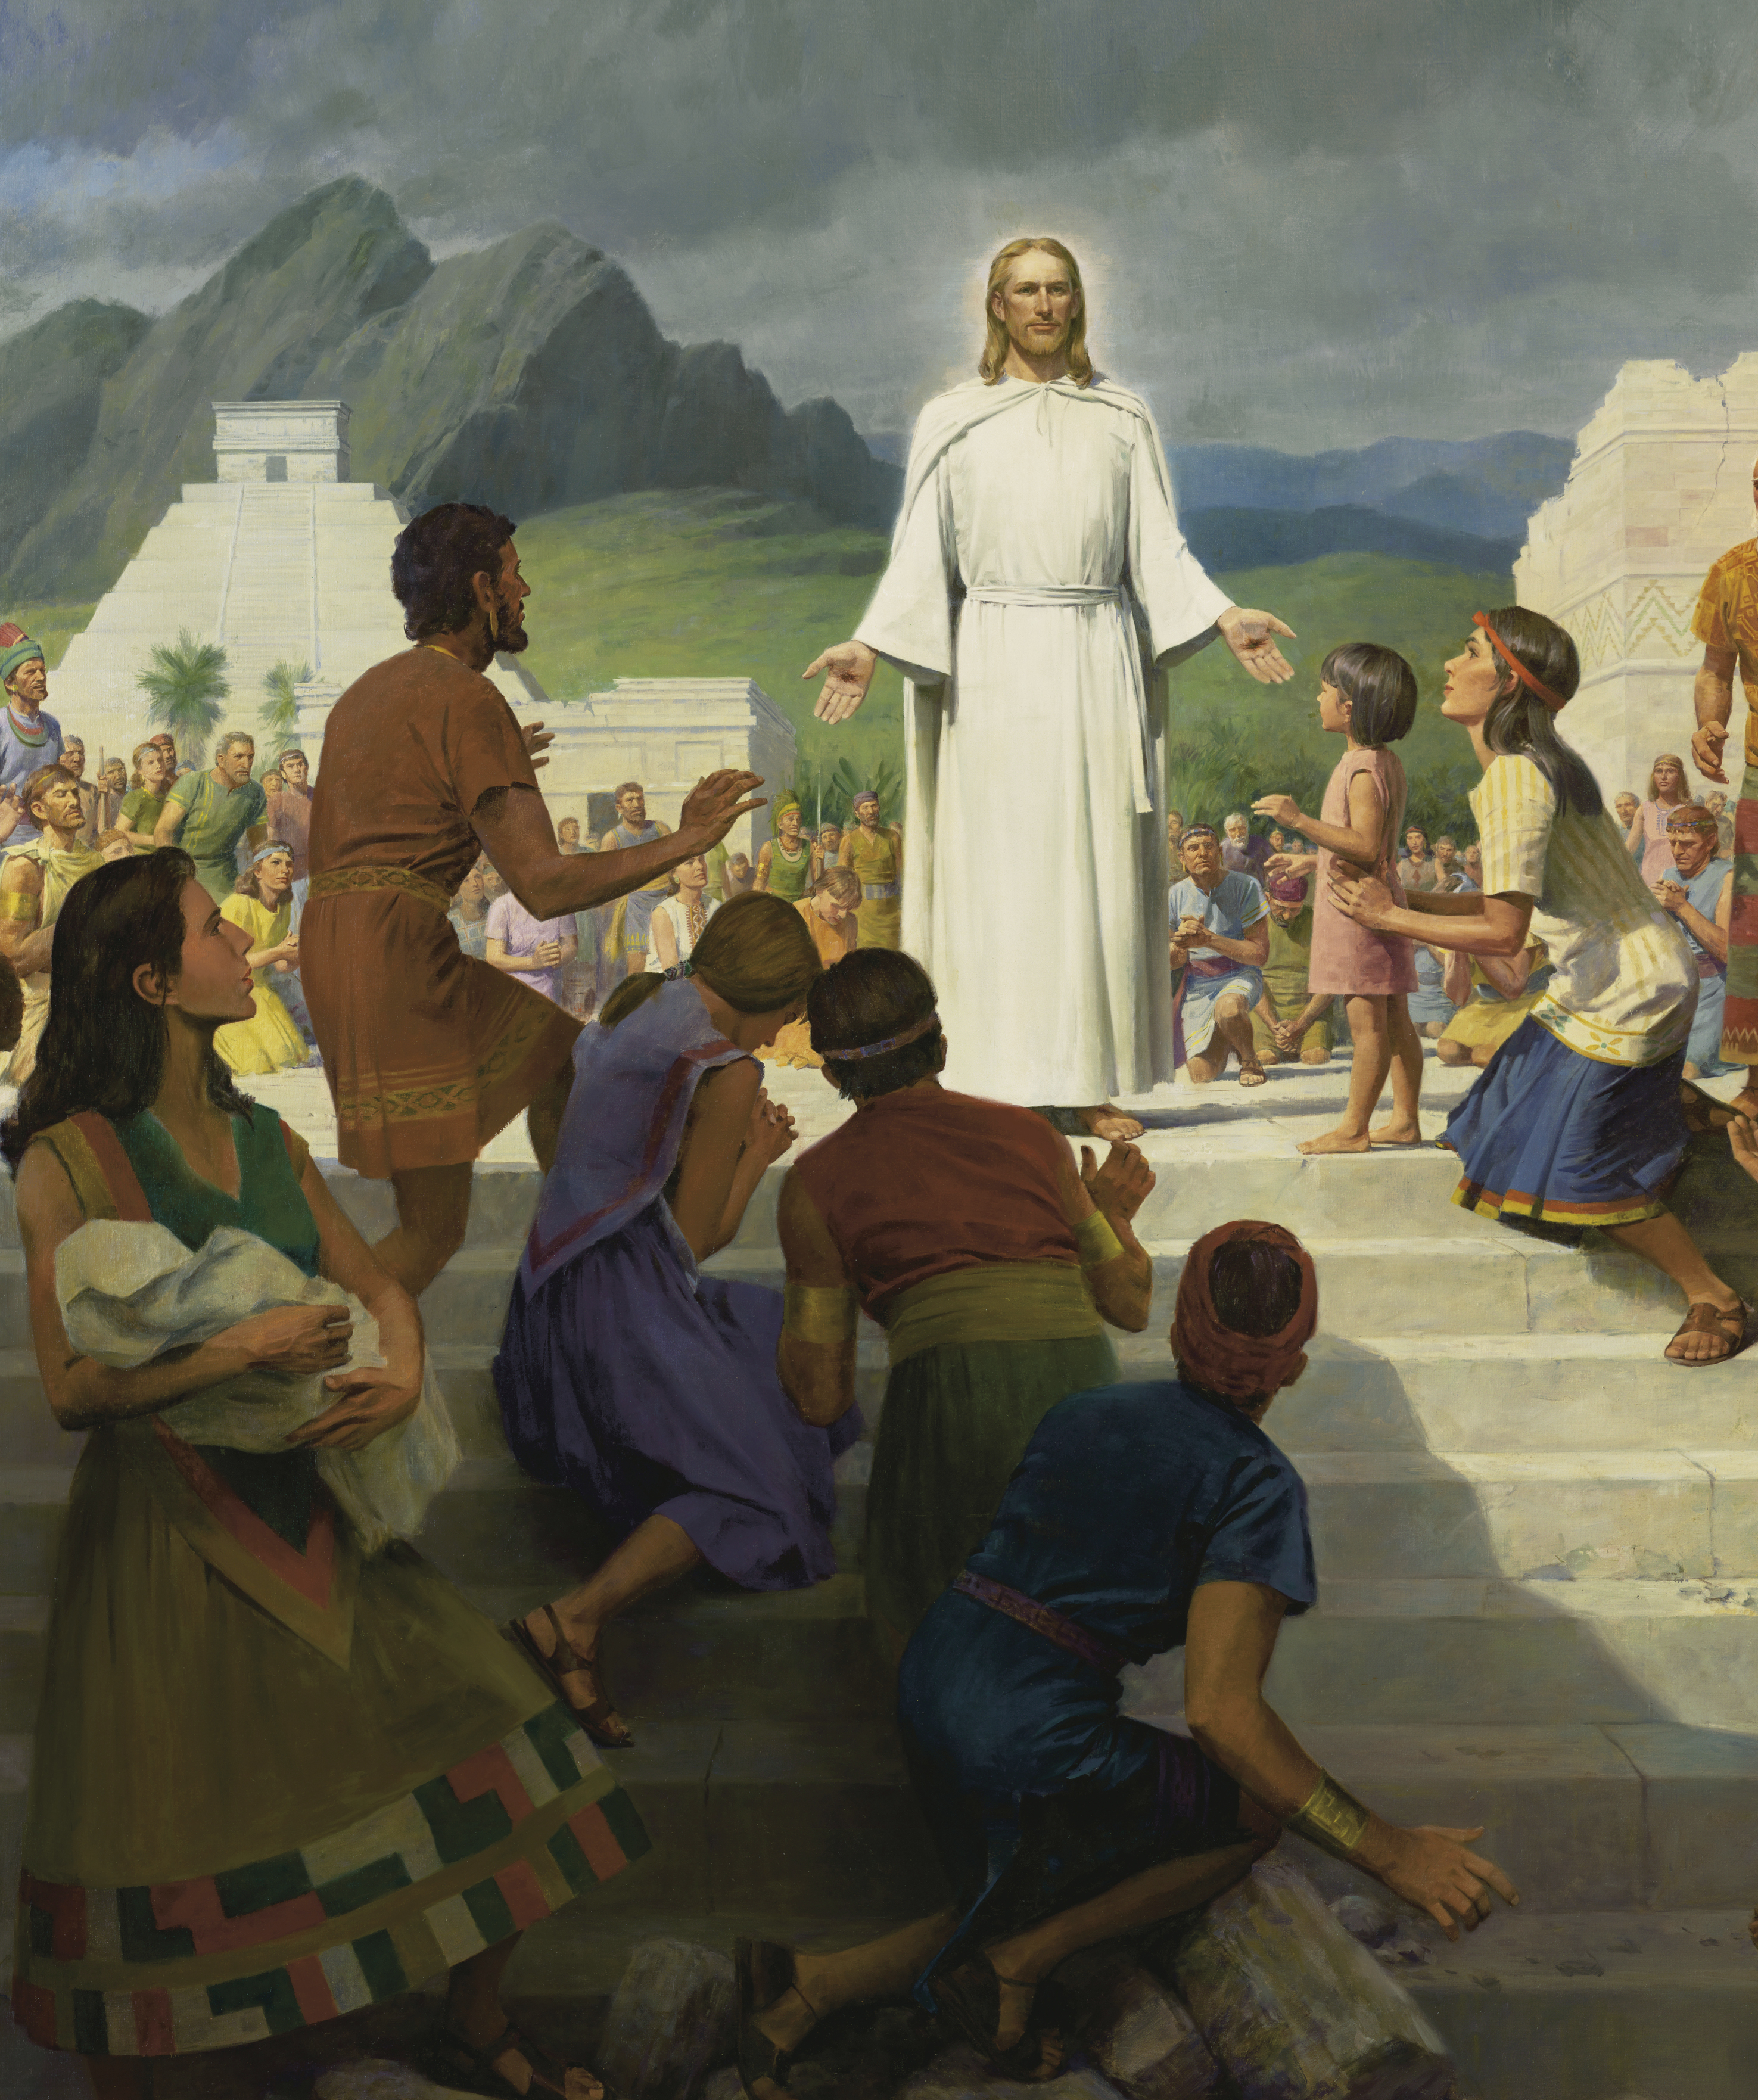 A detail from Jesus Christ Visits the Americas, by John Scott